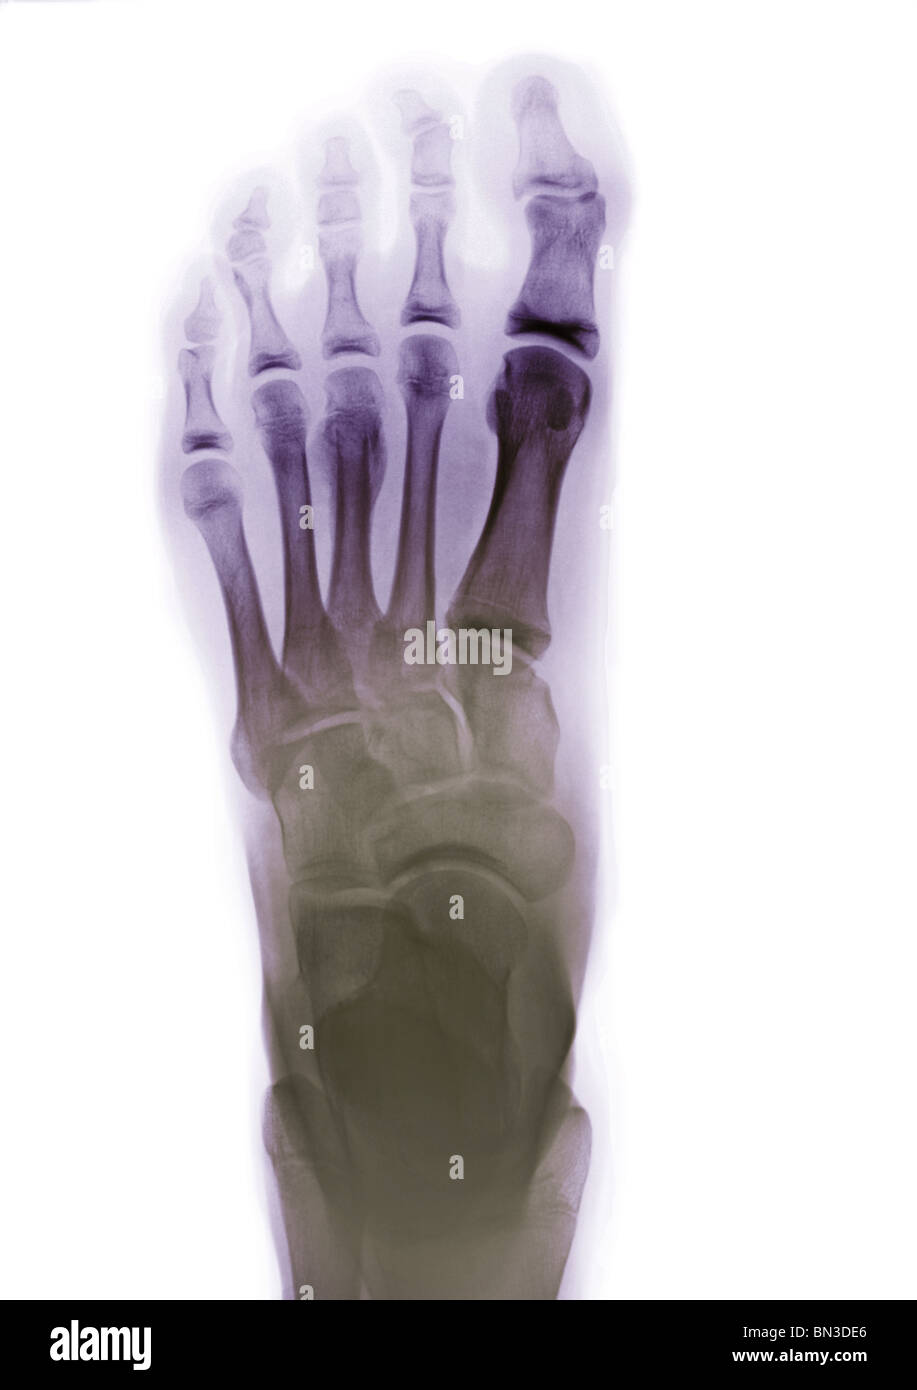 colorized x-ray of a human foot - Stock Image